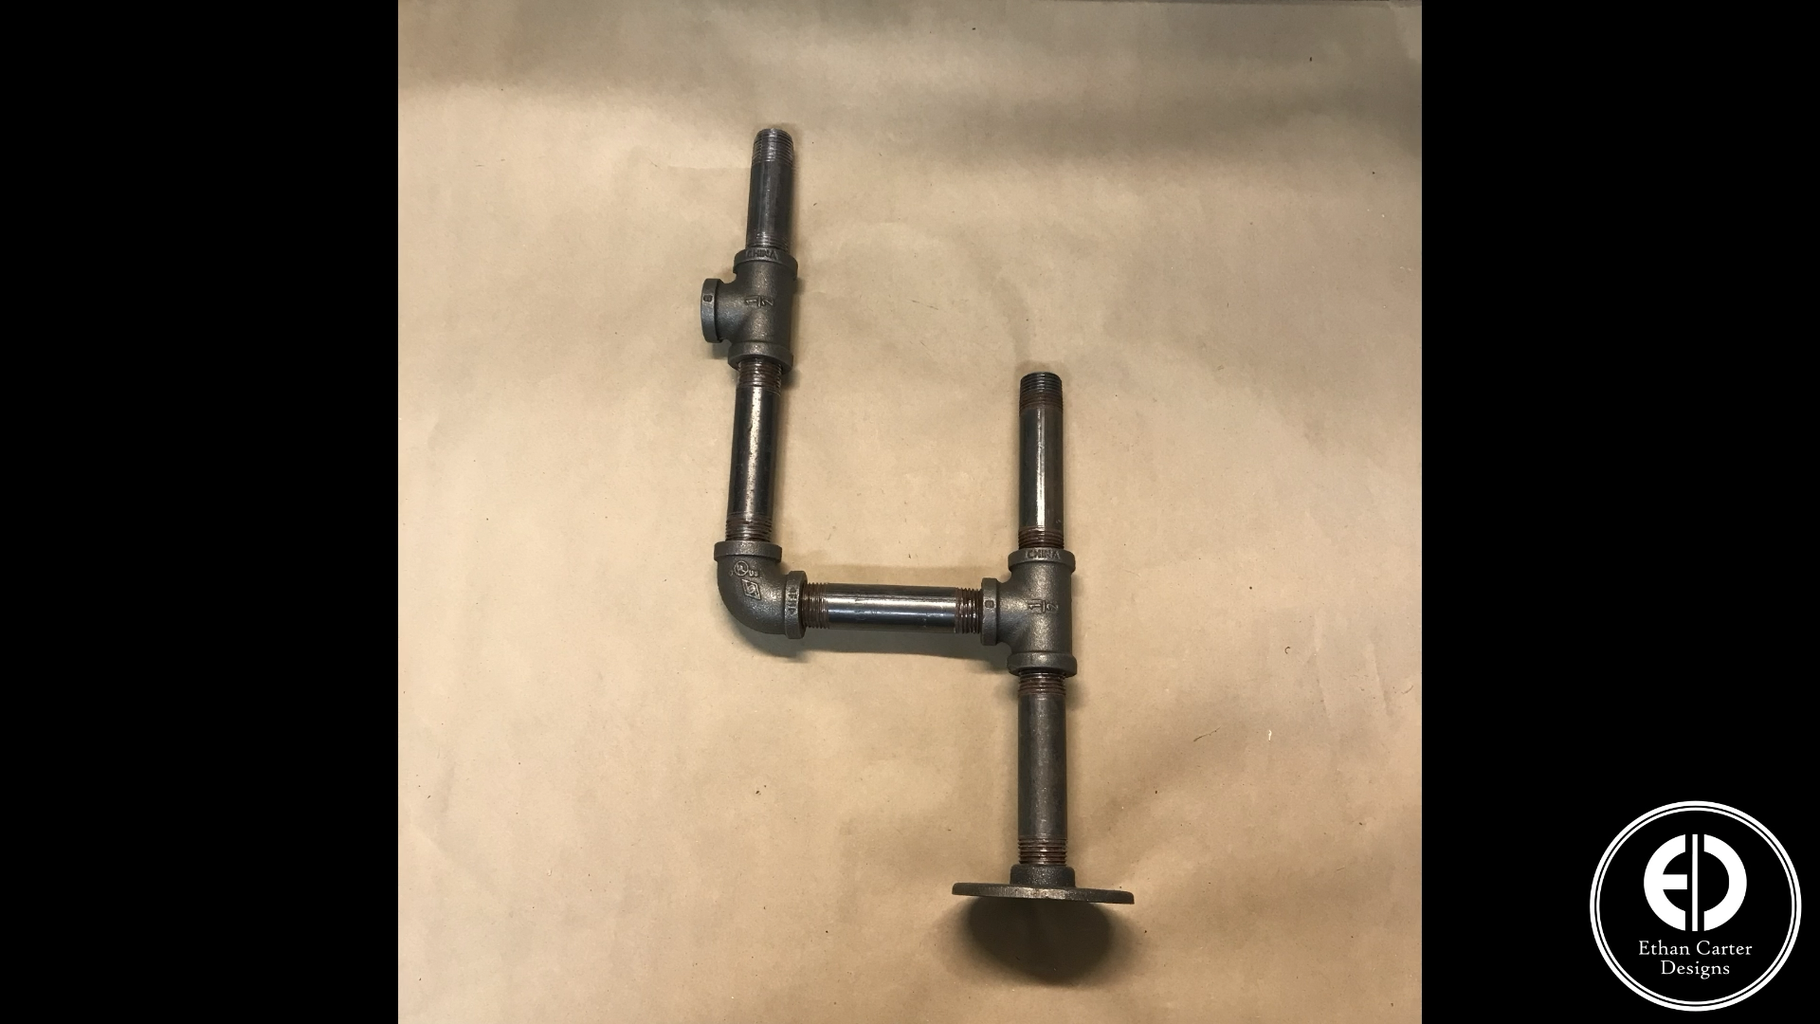 Adding Feet and Figuring Out the Pipe Configuration